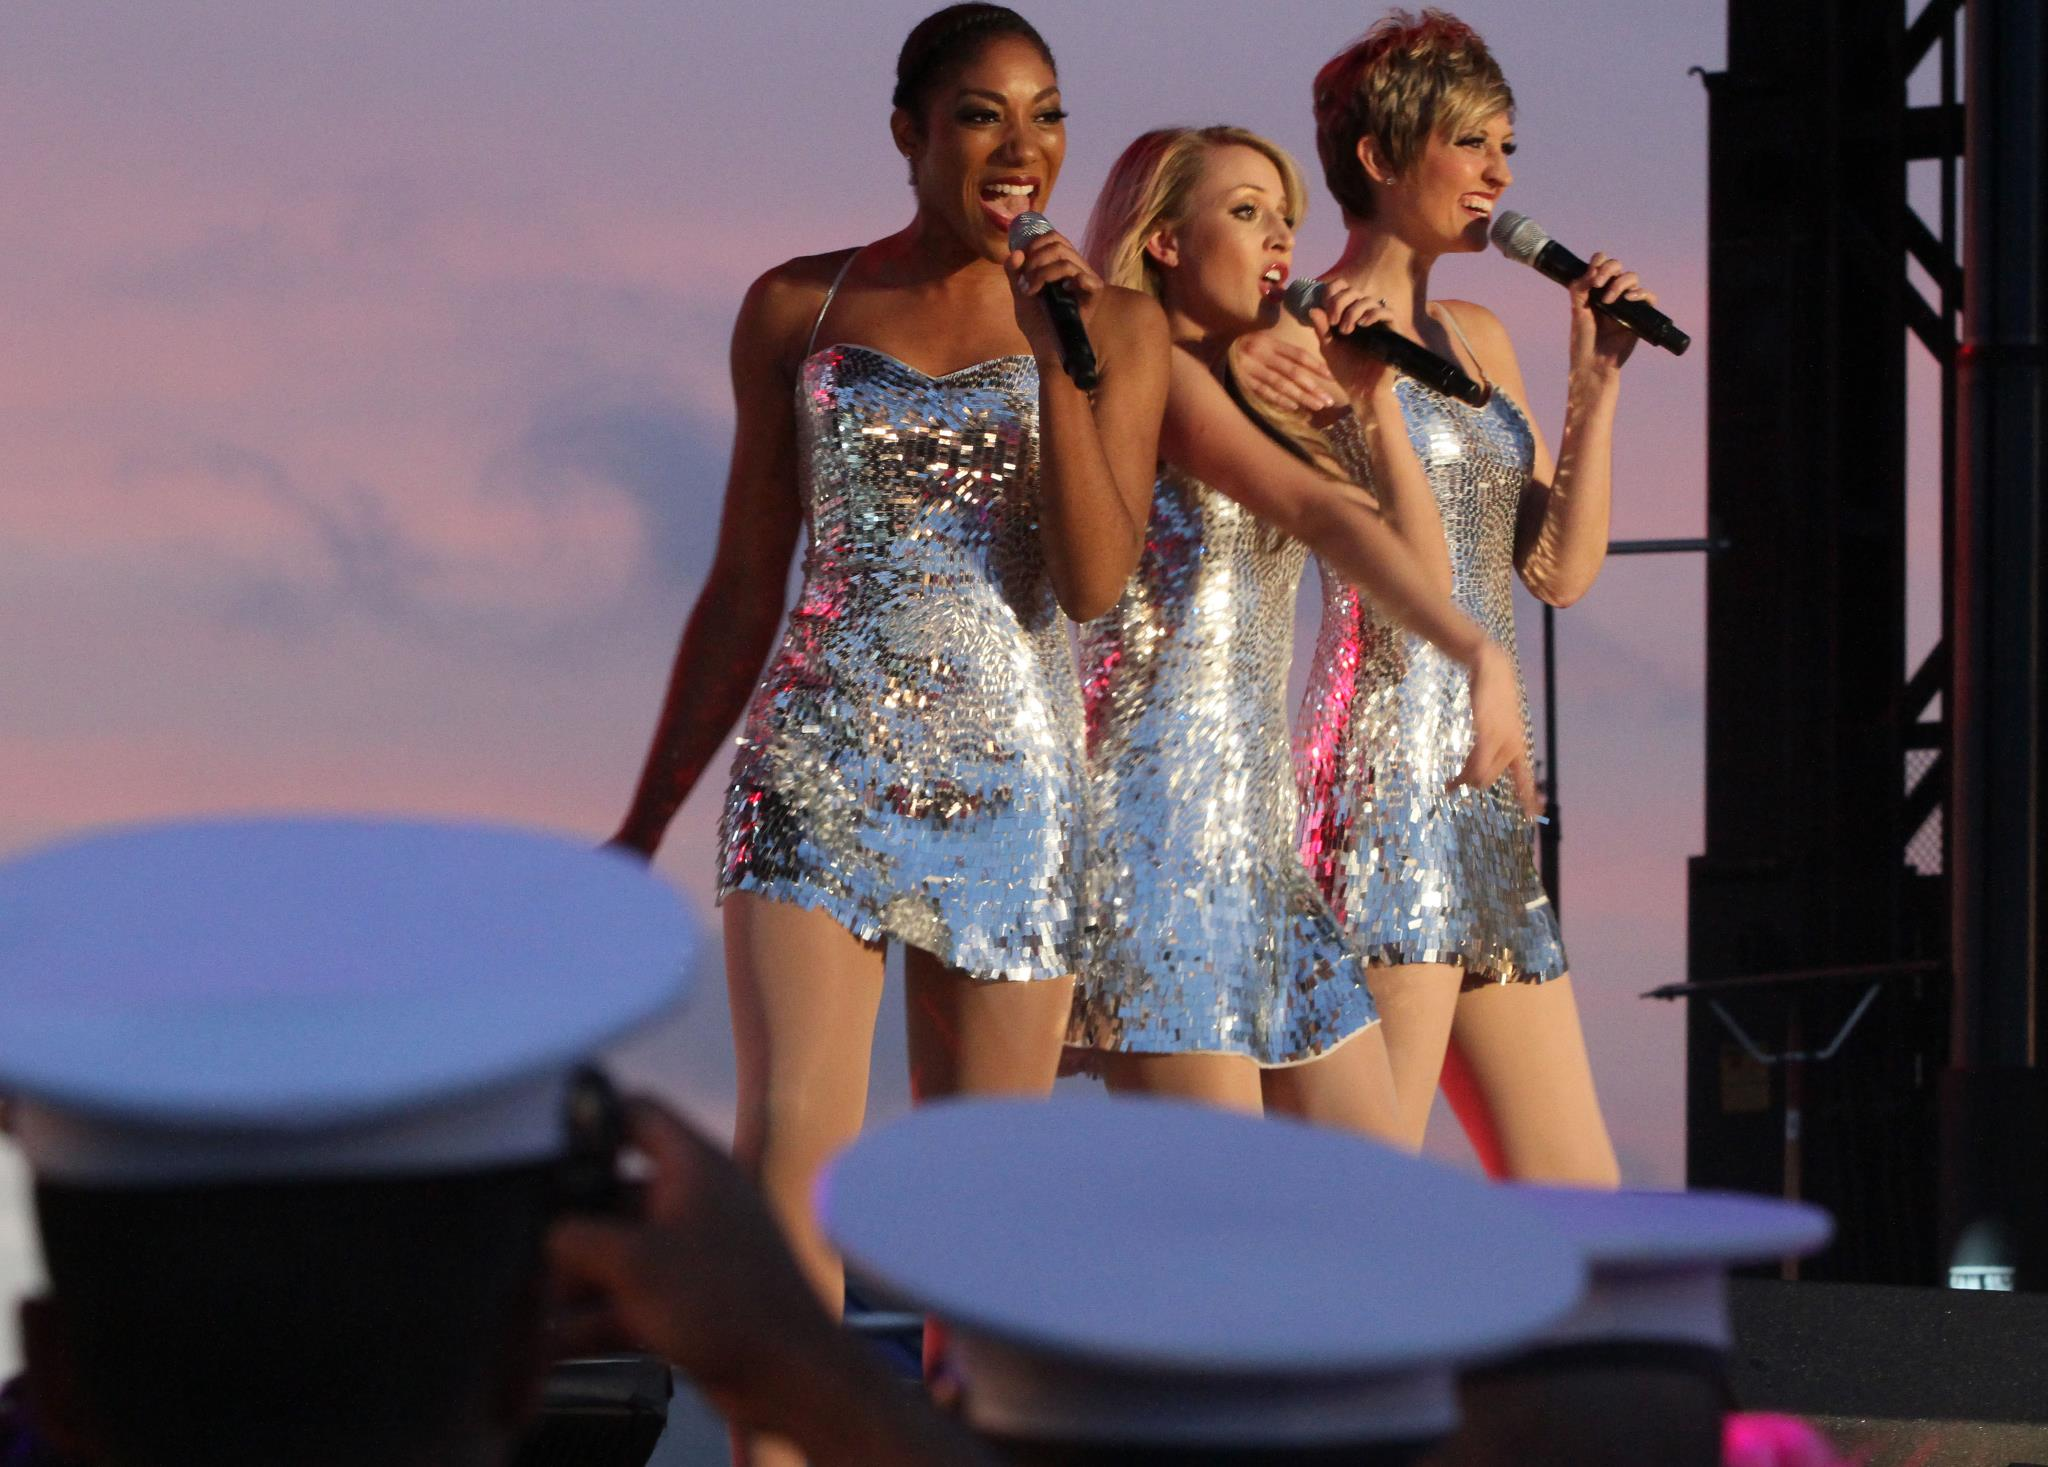 Katy+Perry+Opening+Act+USO+Fleet+Week+2012